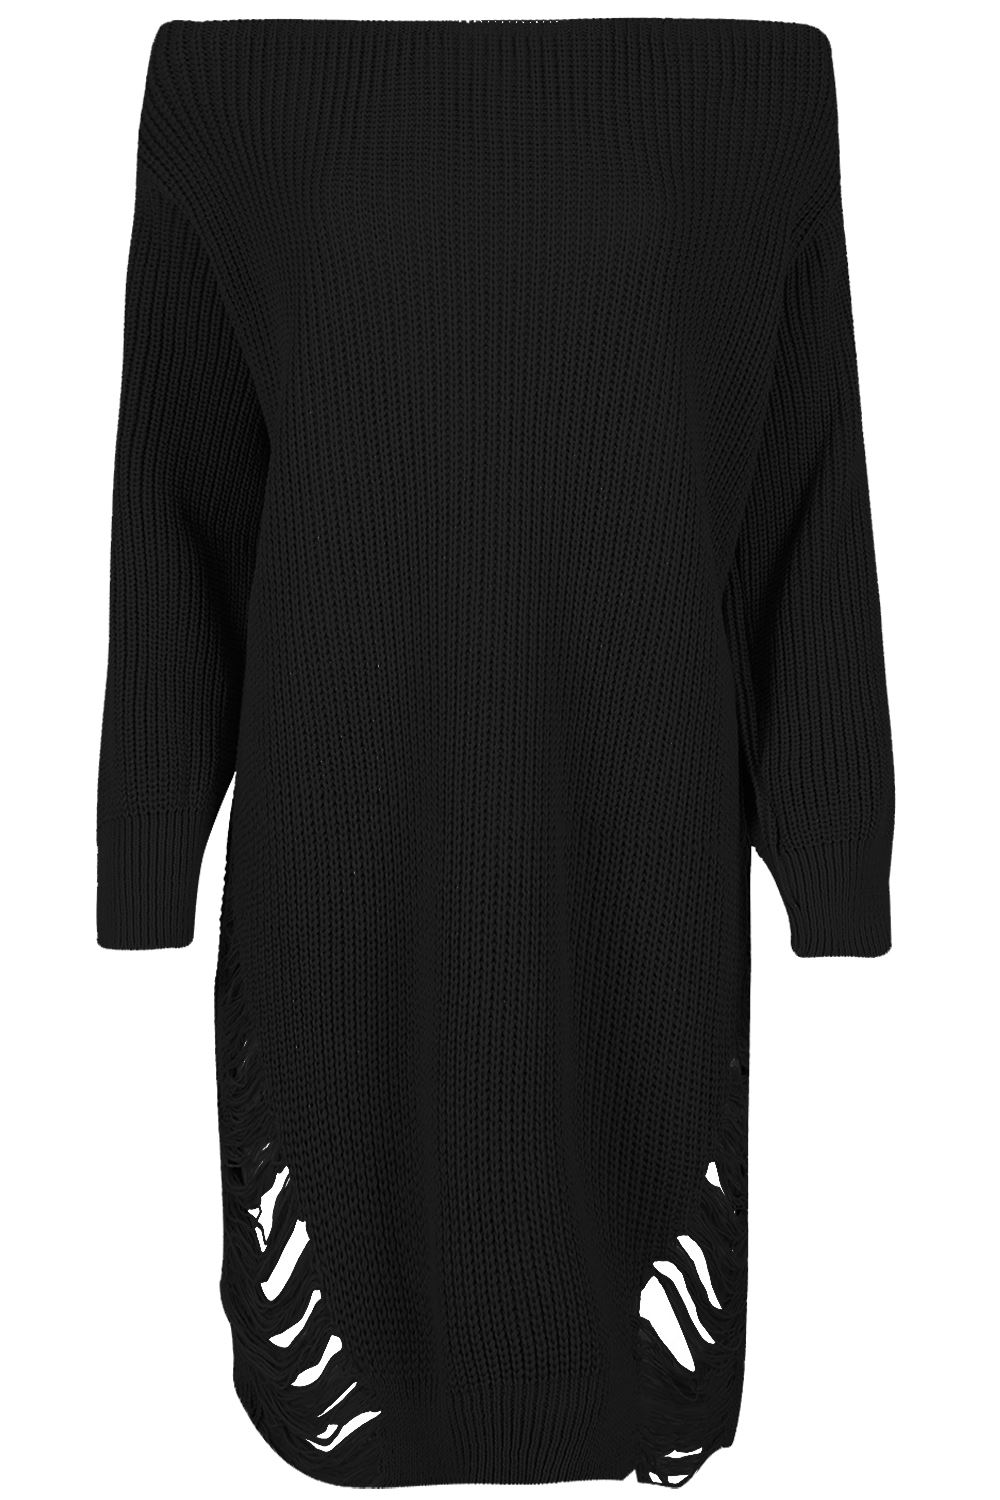 Womens-Oversized-Jumper-Ladies-Dress-Long-Sleeve-Chunky-Knitted-Long-Sweater-Top thumbnail 28